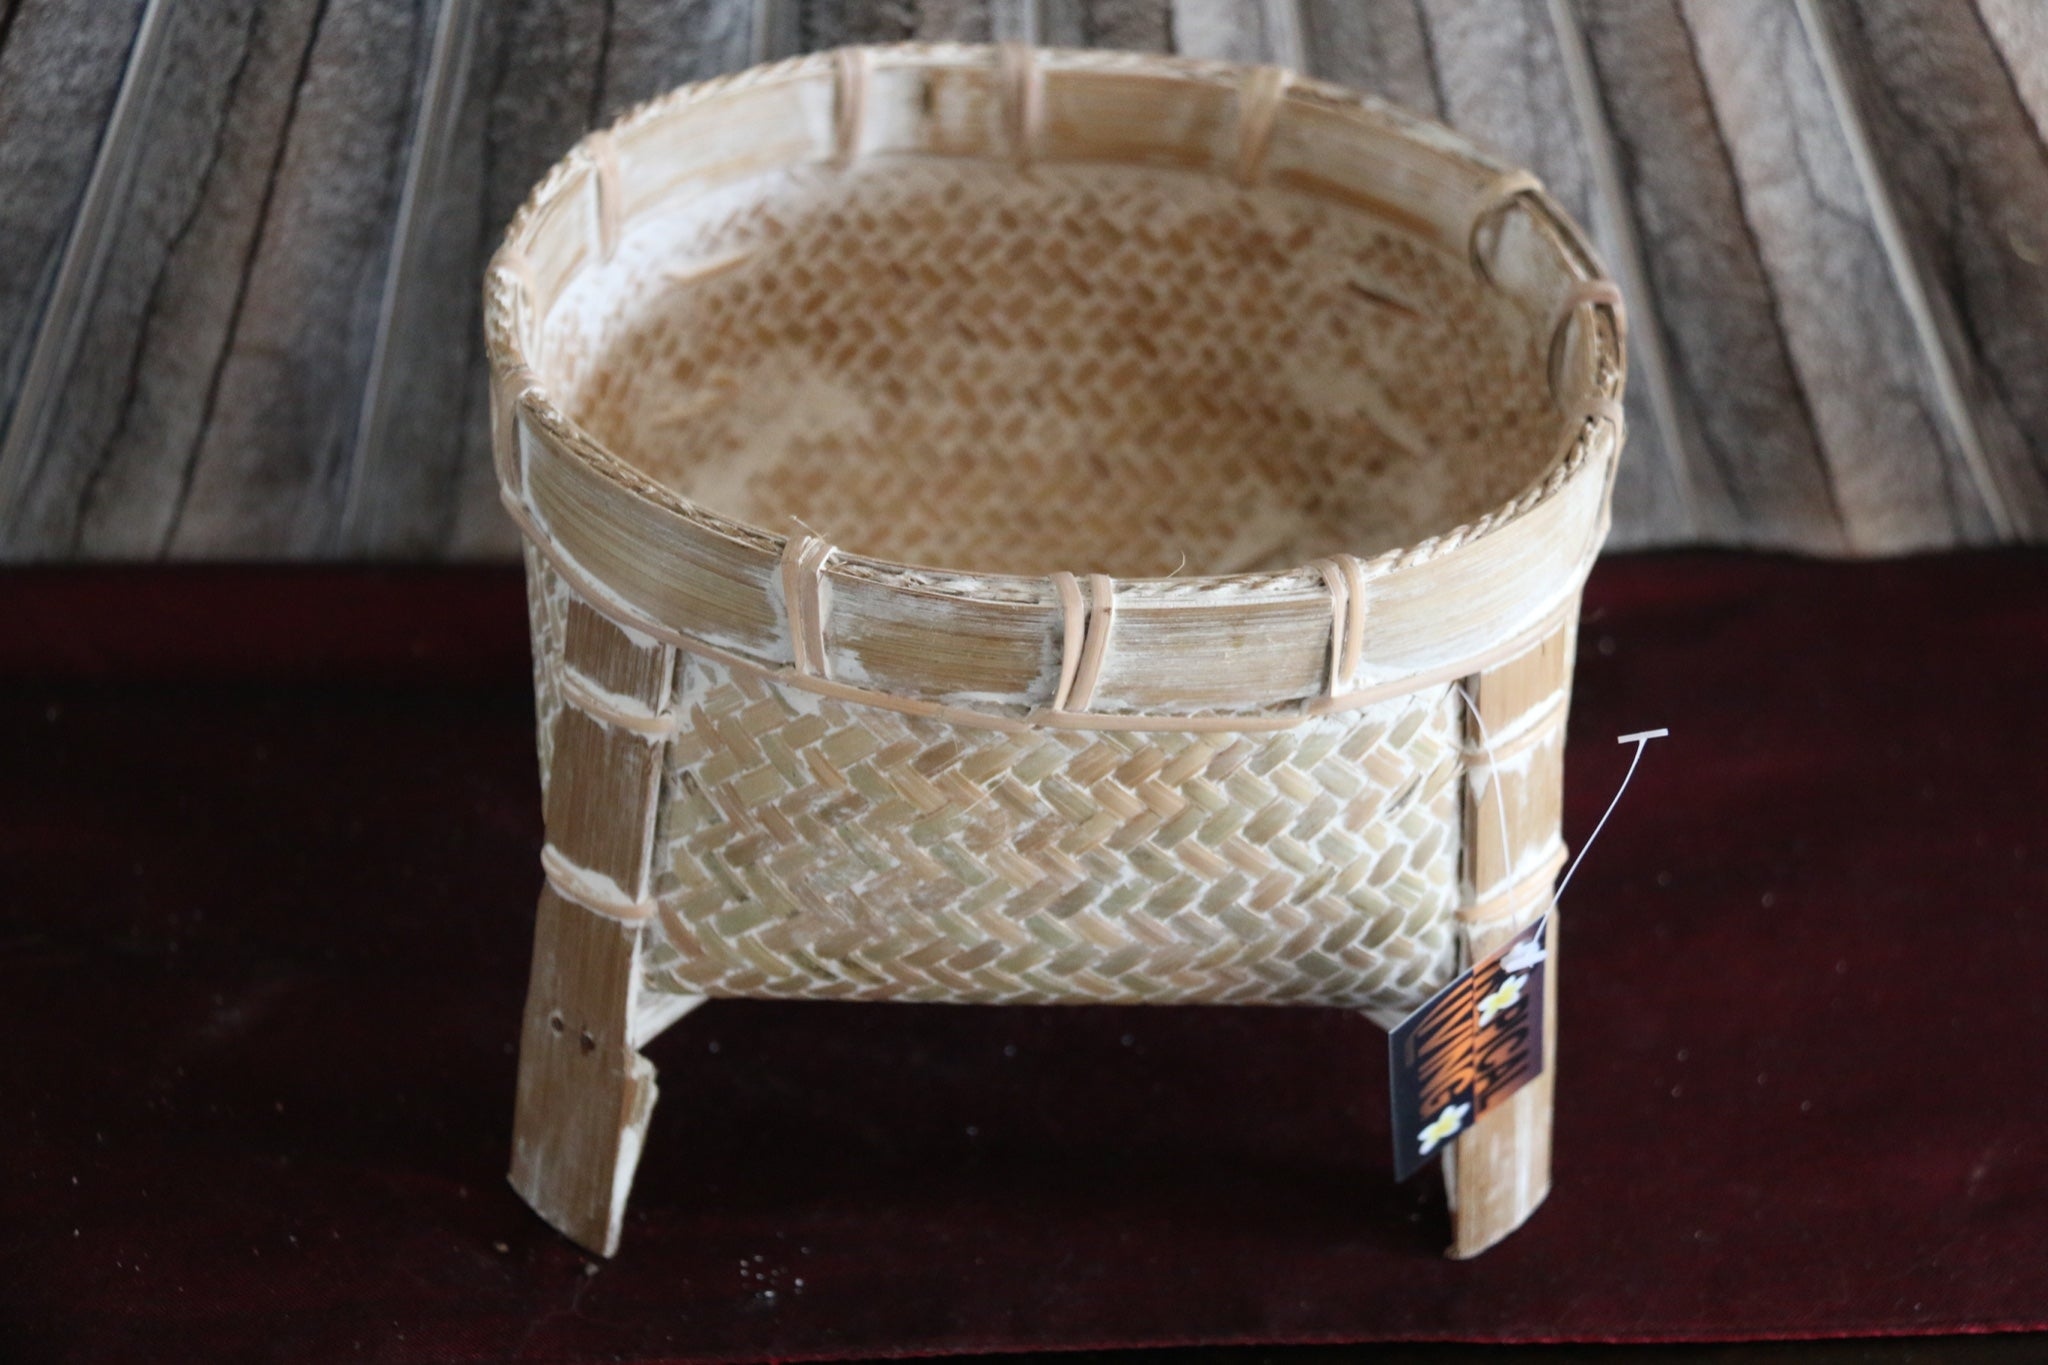 NEW BALINESE HAND WOVEN CANE OPEN BASKET ON LEGS - Small